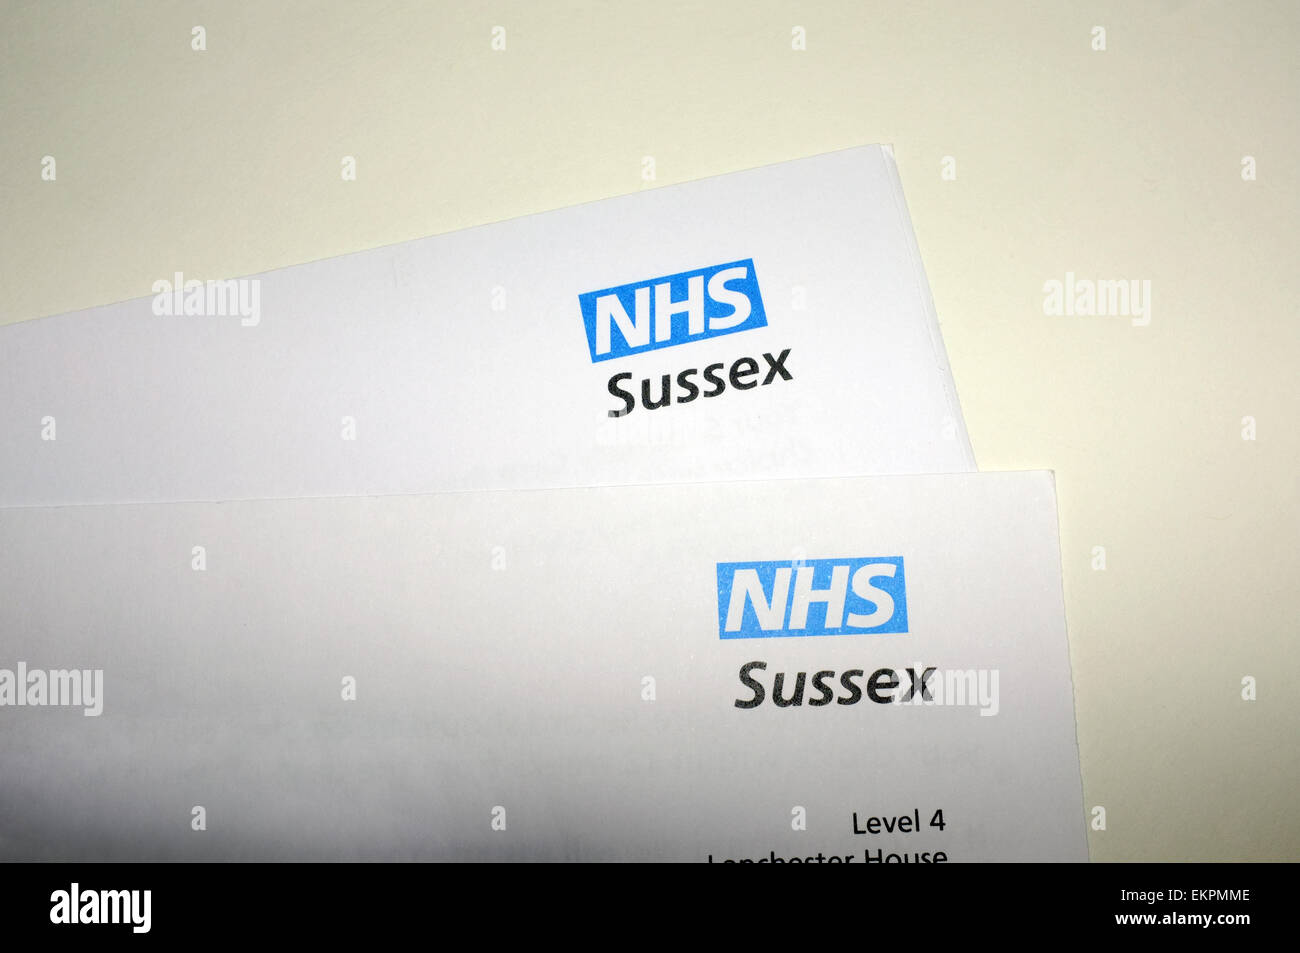 NHS (National Health Service) Sussex headed paperwork. - Stock Image